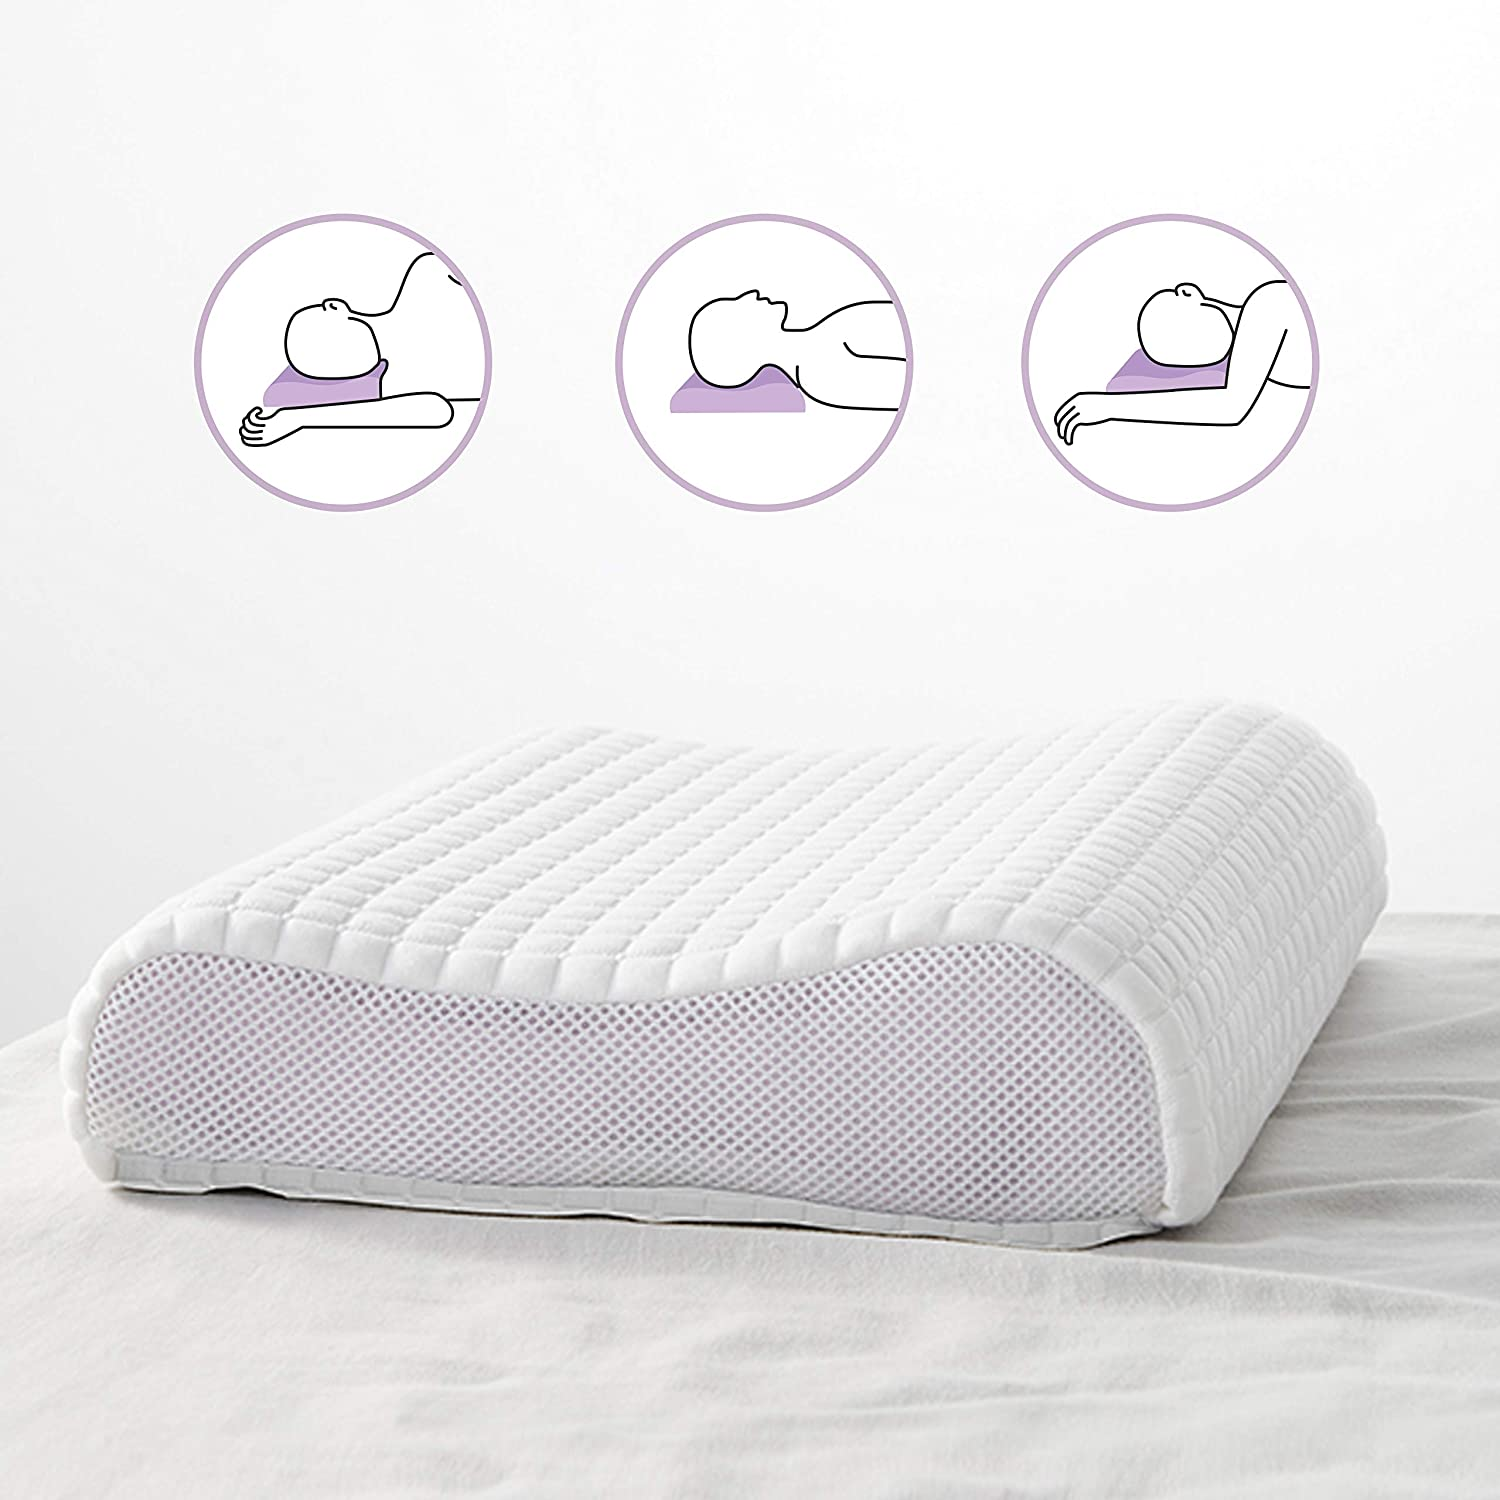 DAPU Purple Pillow Optimal Head Neck Support for Hot Sleepers 360/º Grid Hex Soft Responsive Moisture-Wicking